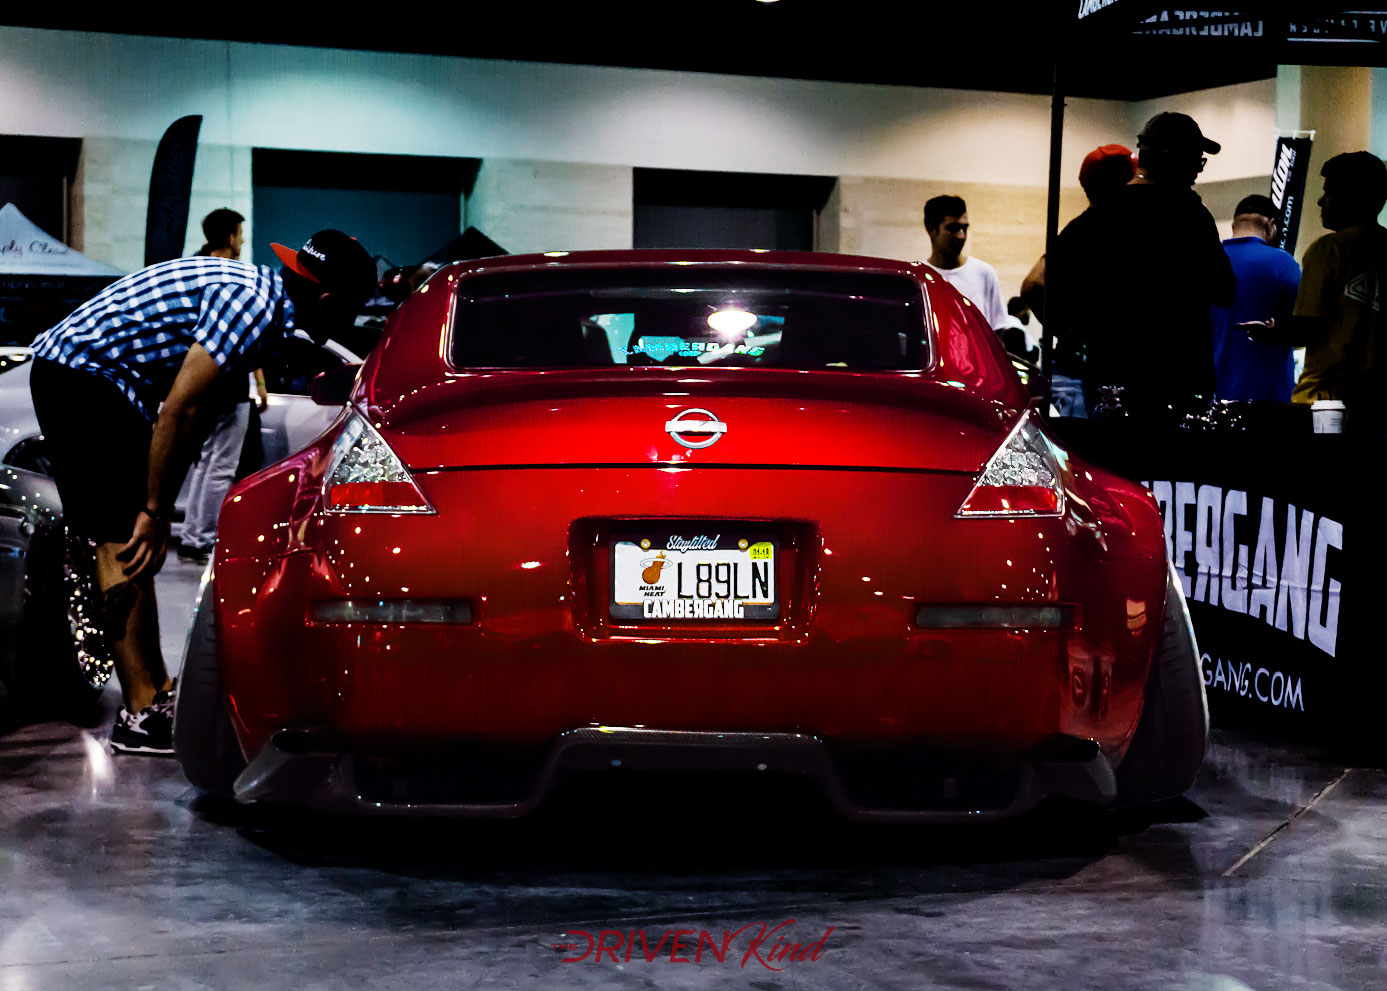 Nissan 370Z Tuner Evolution Car Show Coverage Daytona Beach by The Driven Kind